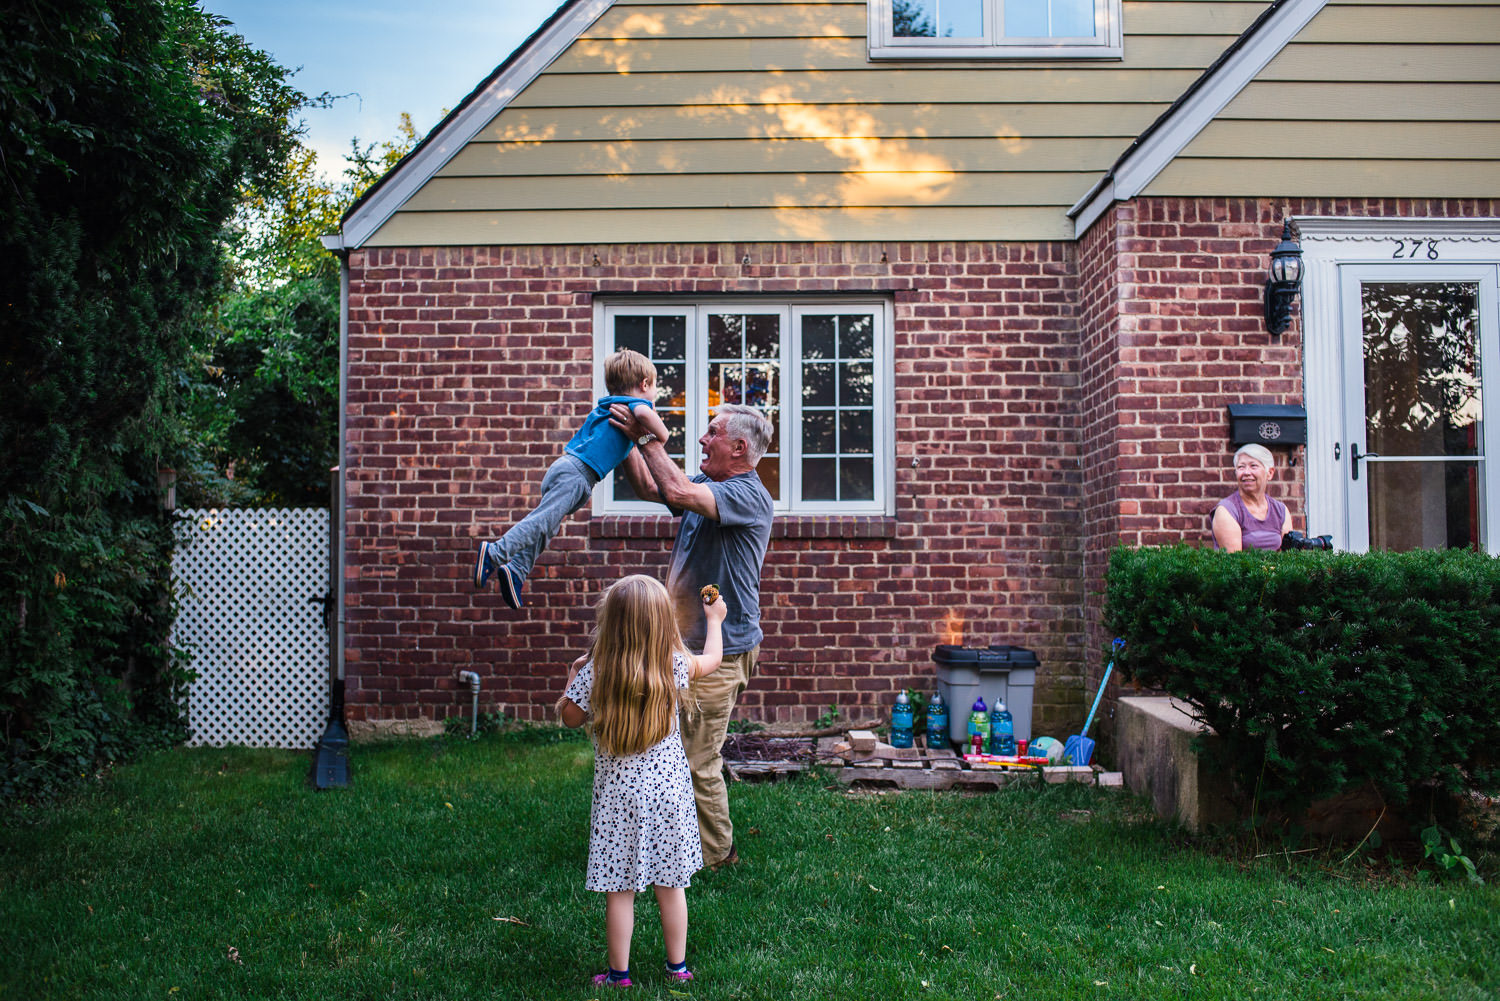 Children spend time with their grandparents in the front yard.